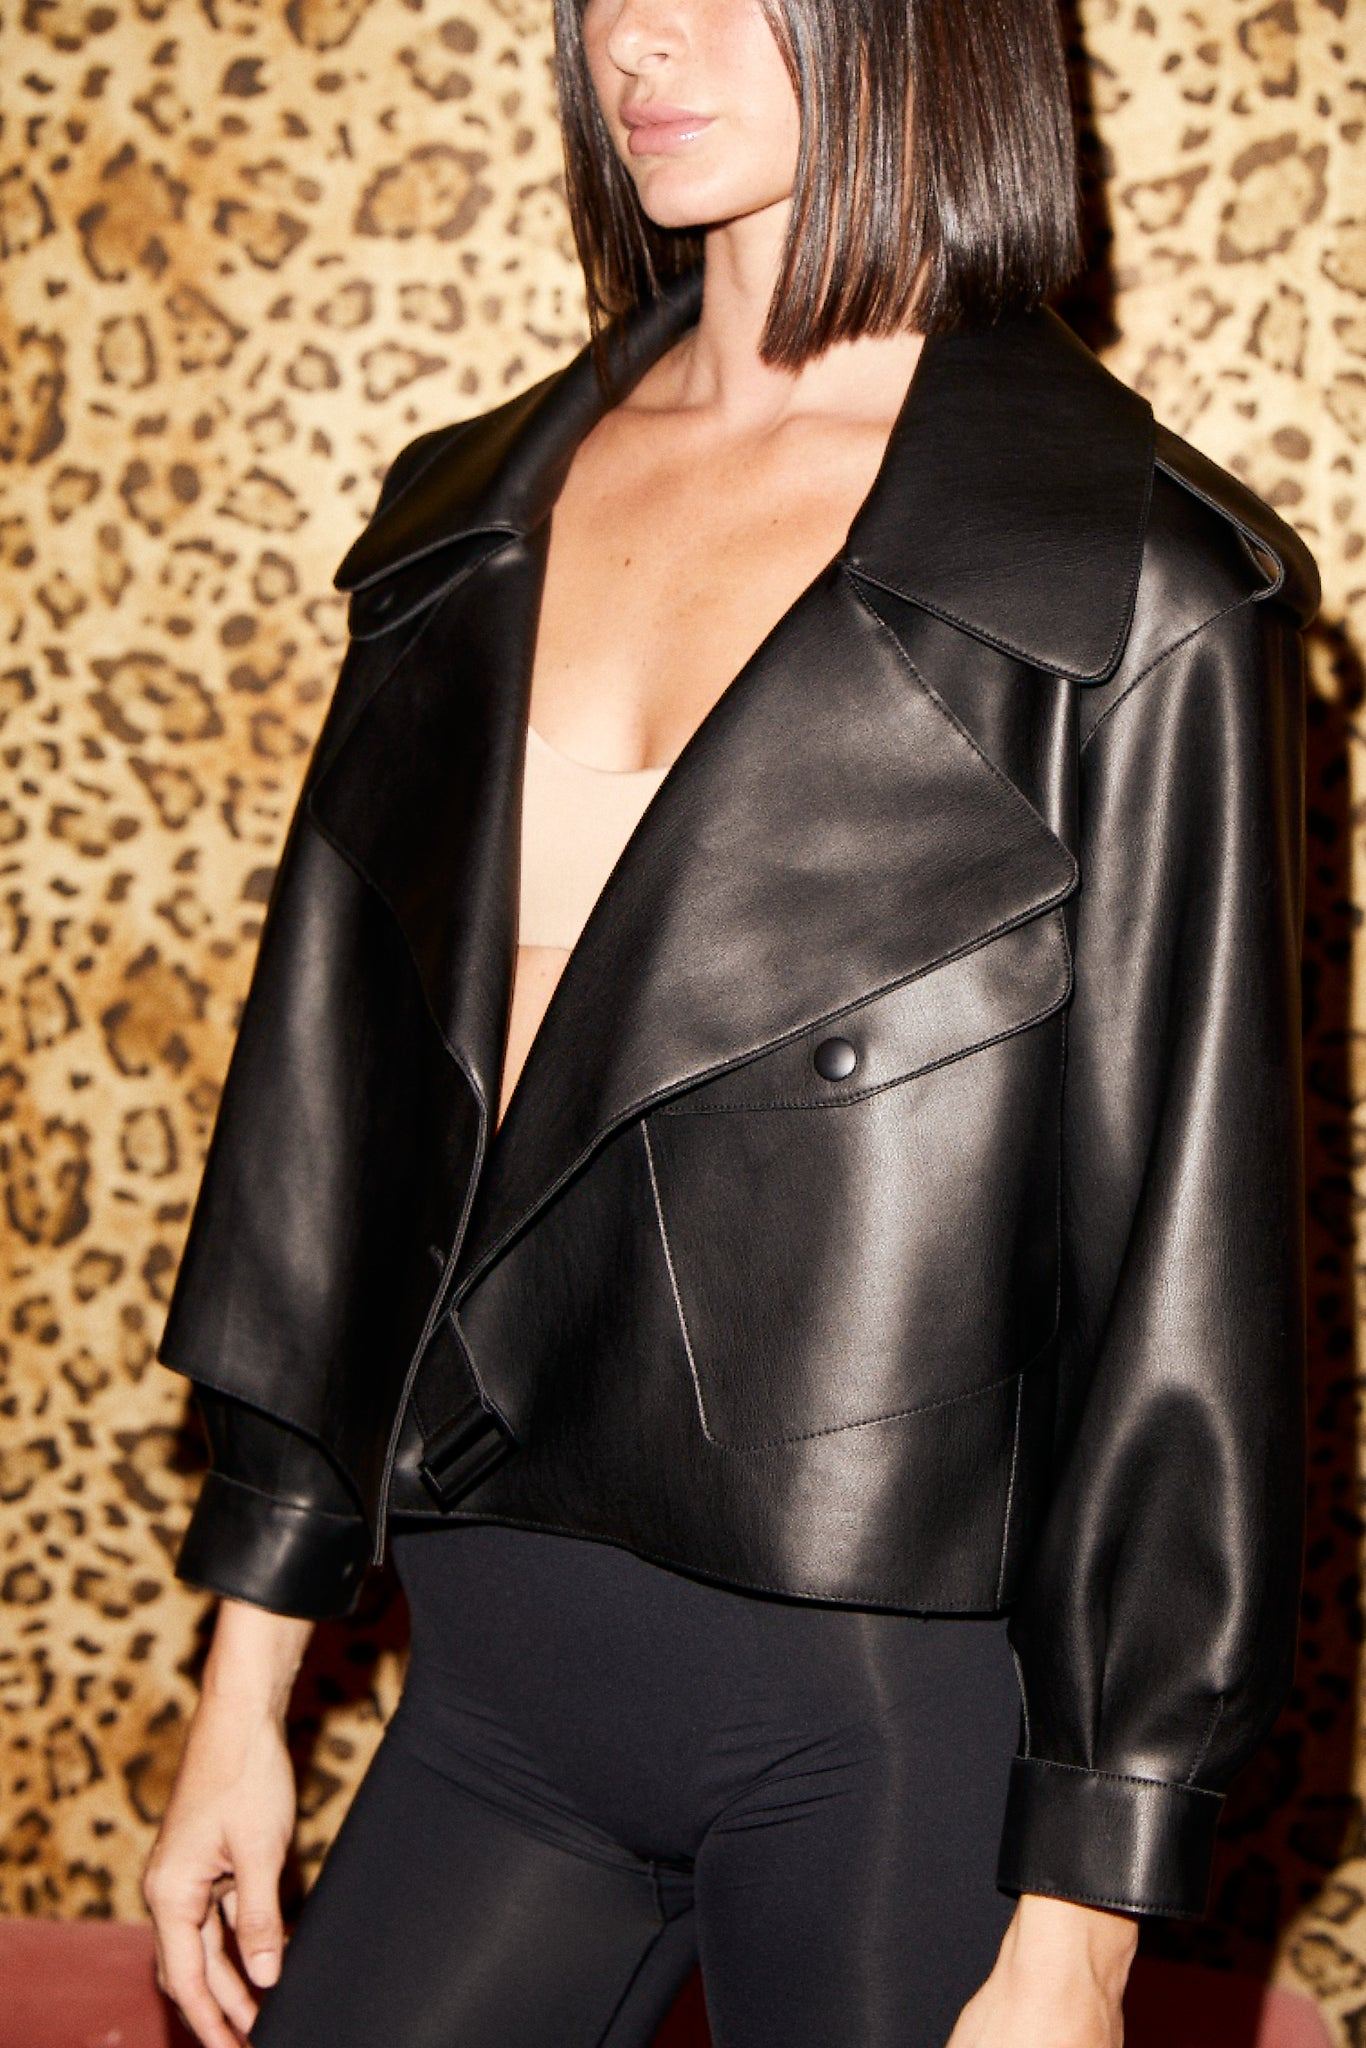 SHACI Matignon faux leather jacket in black with clip and pockets. Comfortable, cozy, breathable, lightweight, fitted.